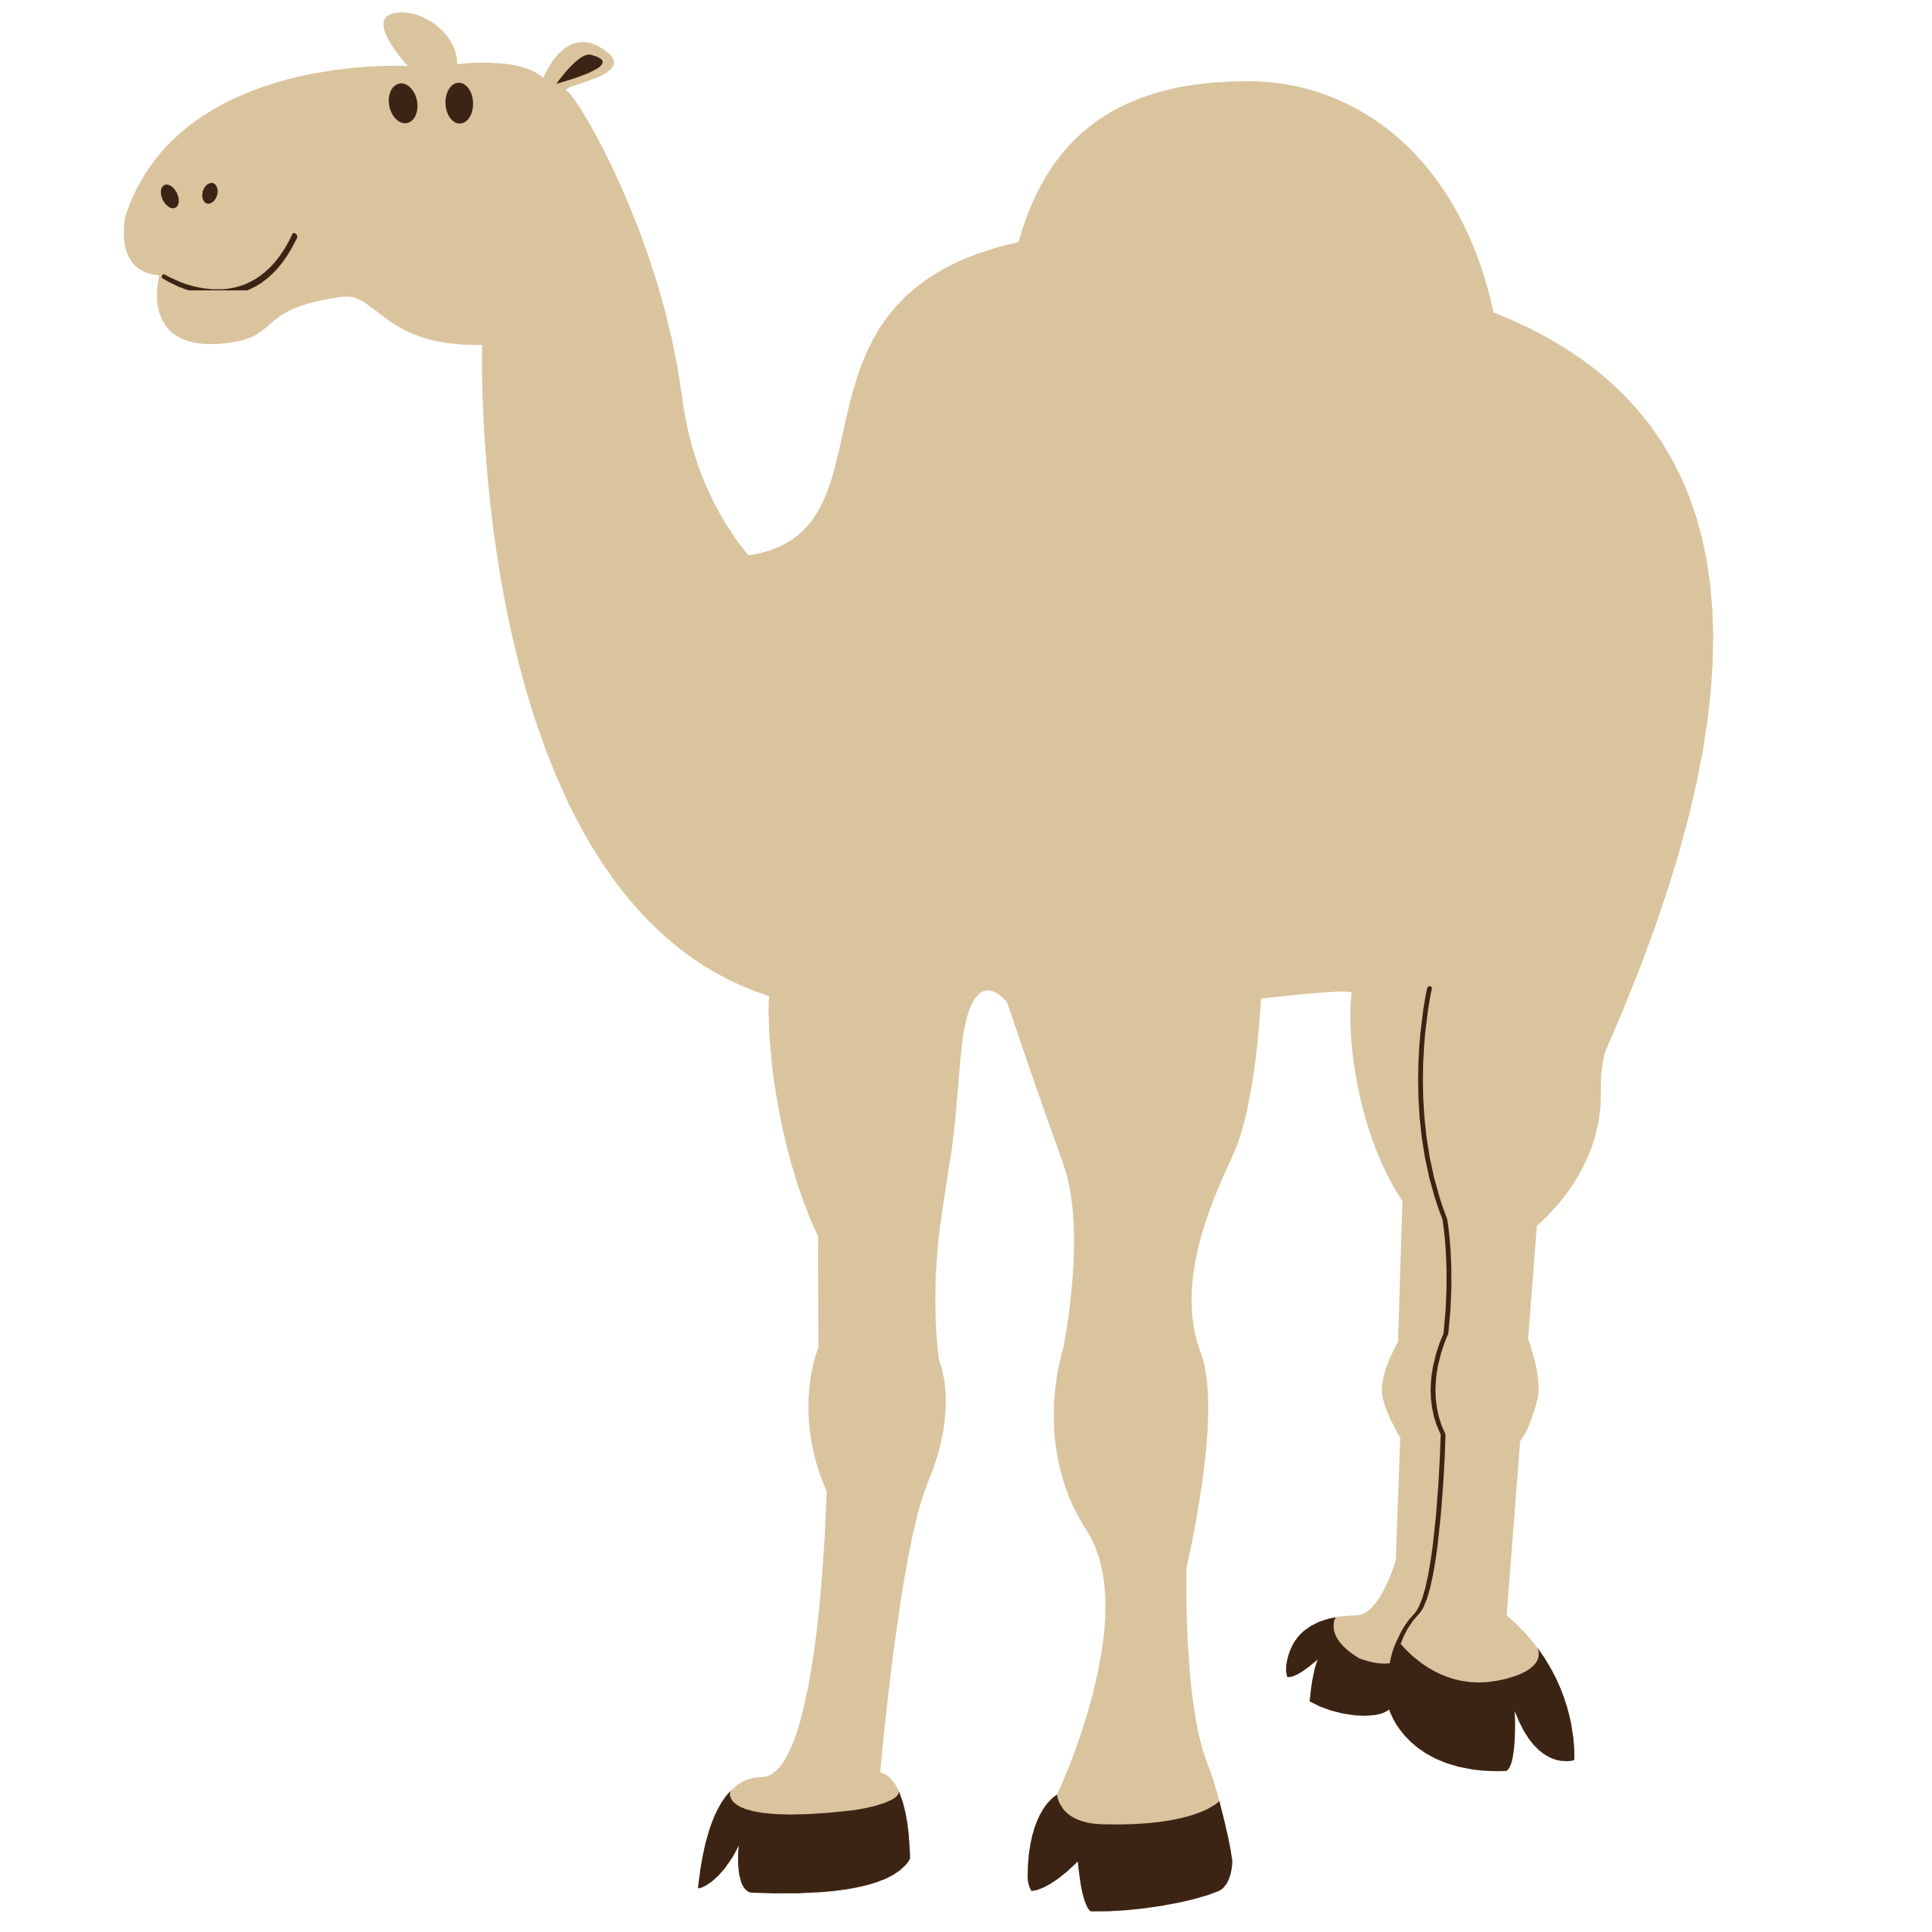 Camel clipart unta Animal org openclipart  Camel